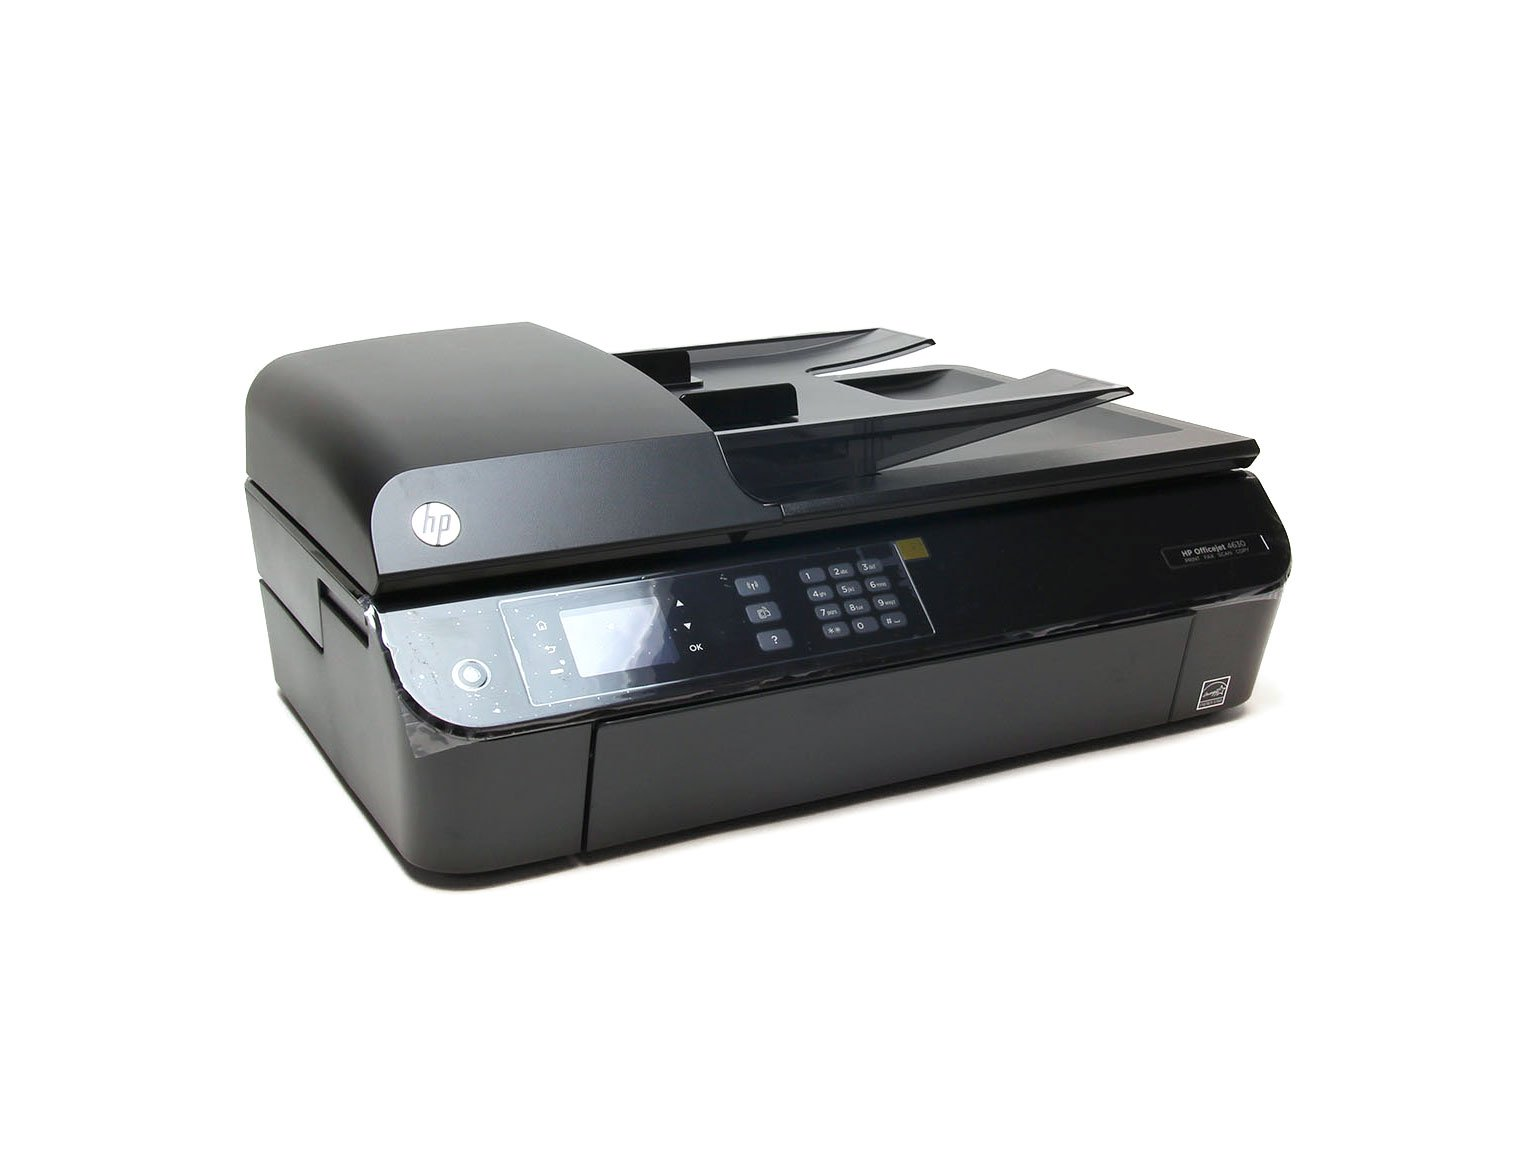 HP Officejet 4630 Driver Software Download & Setup for Windows and Mac